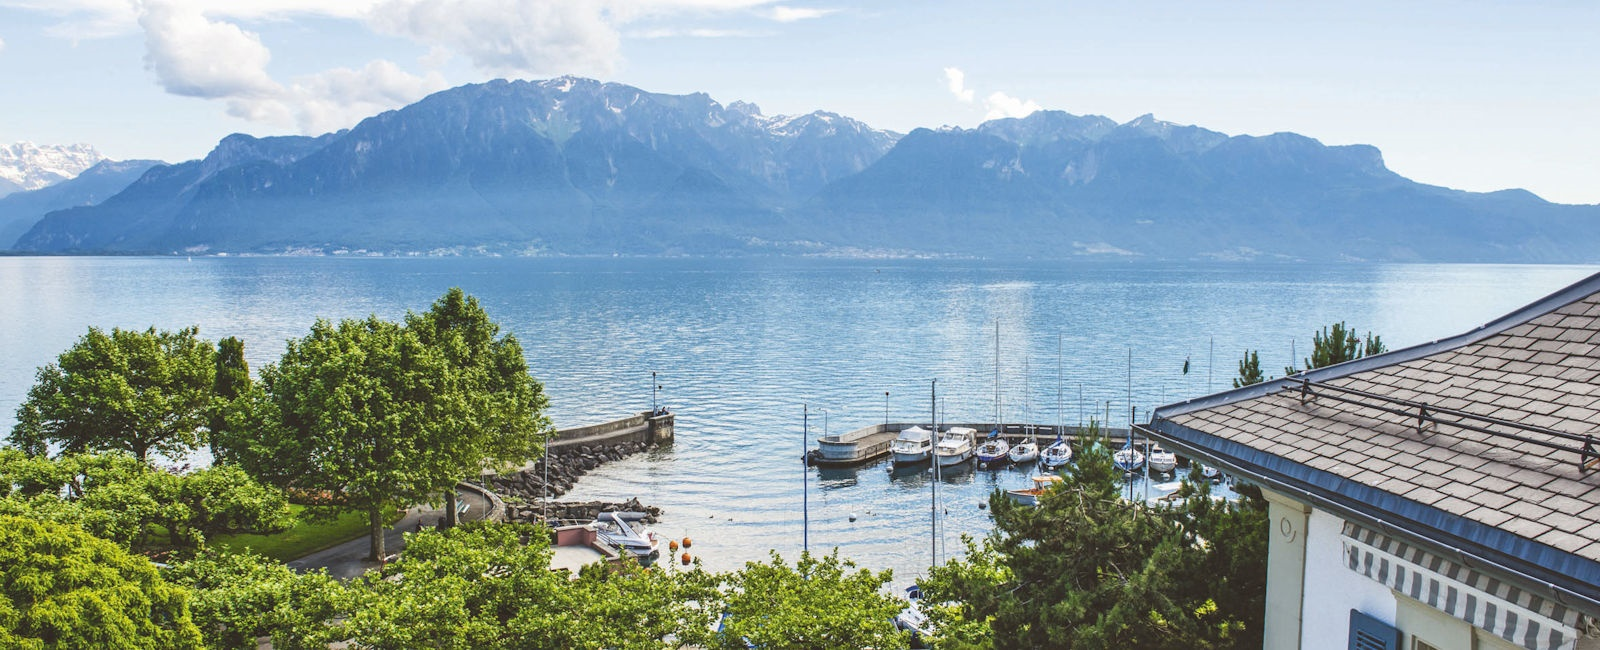 Vevey, view over lake